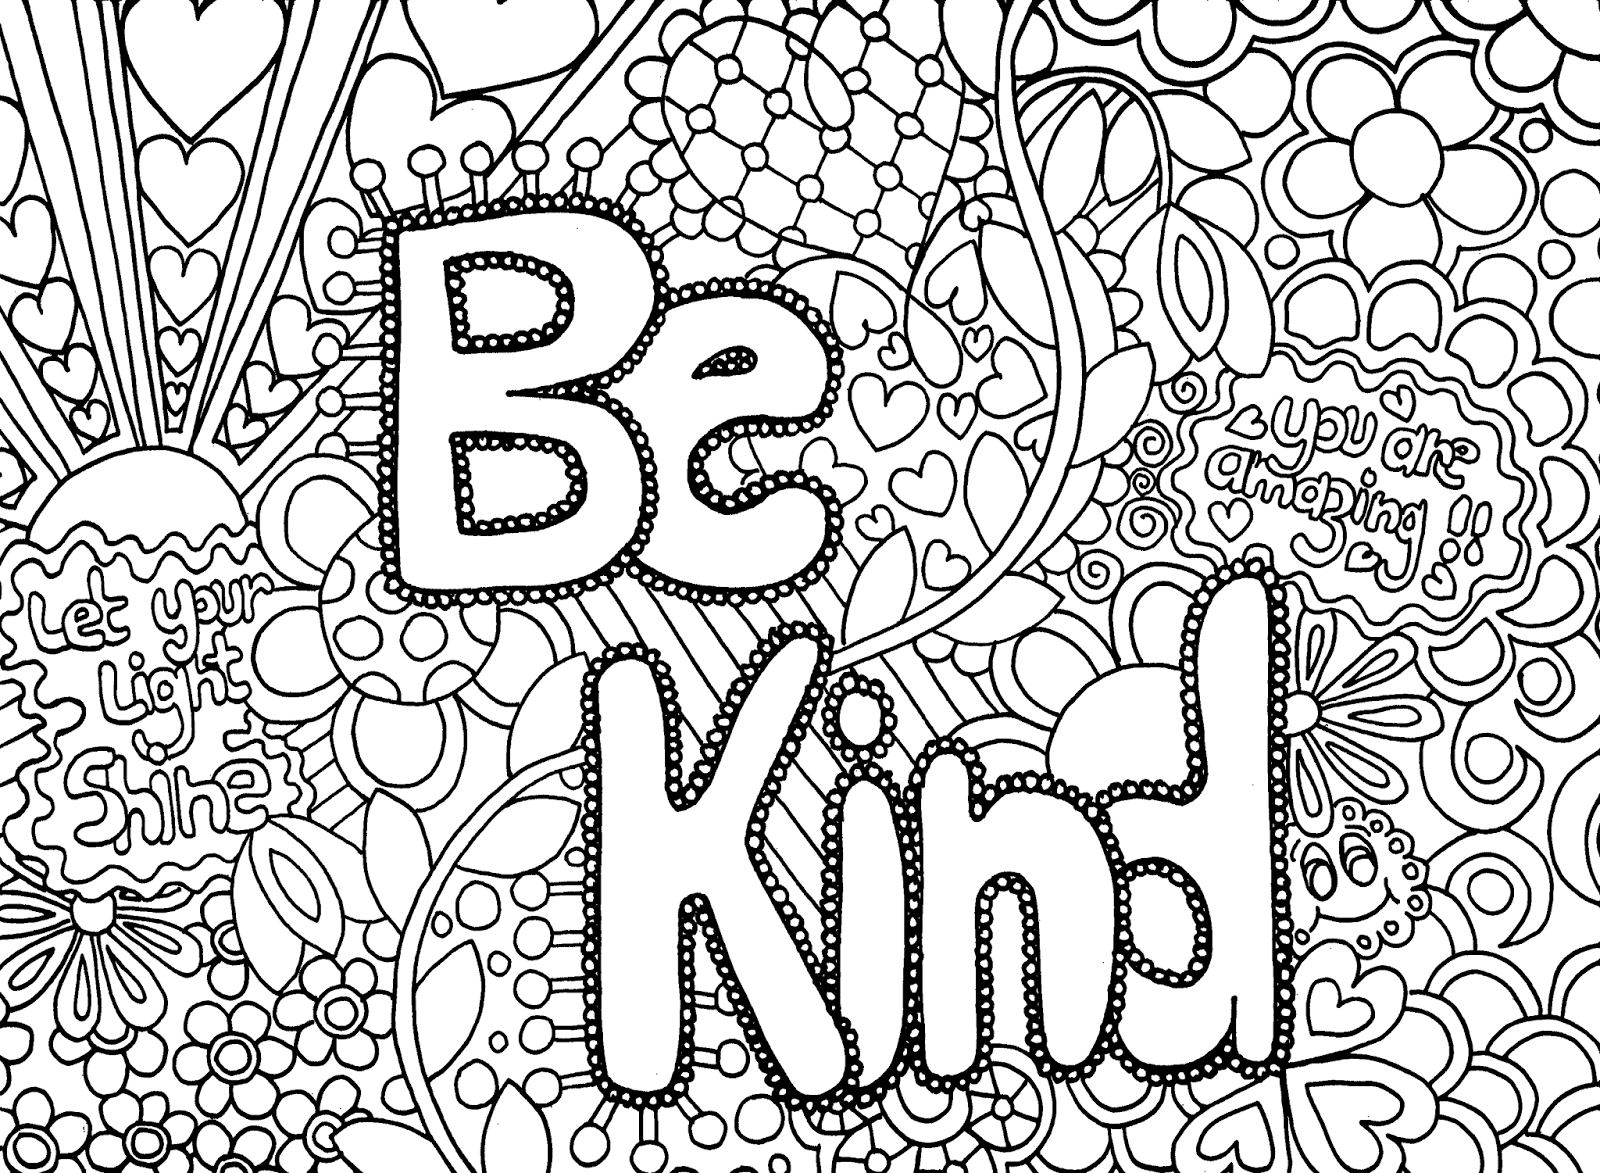 coloring pictures for teenagers hard coloring pages for adults best coloring pages for kids pictures for teenagers coloring